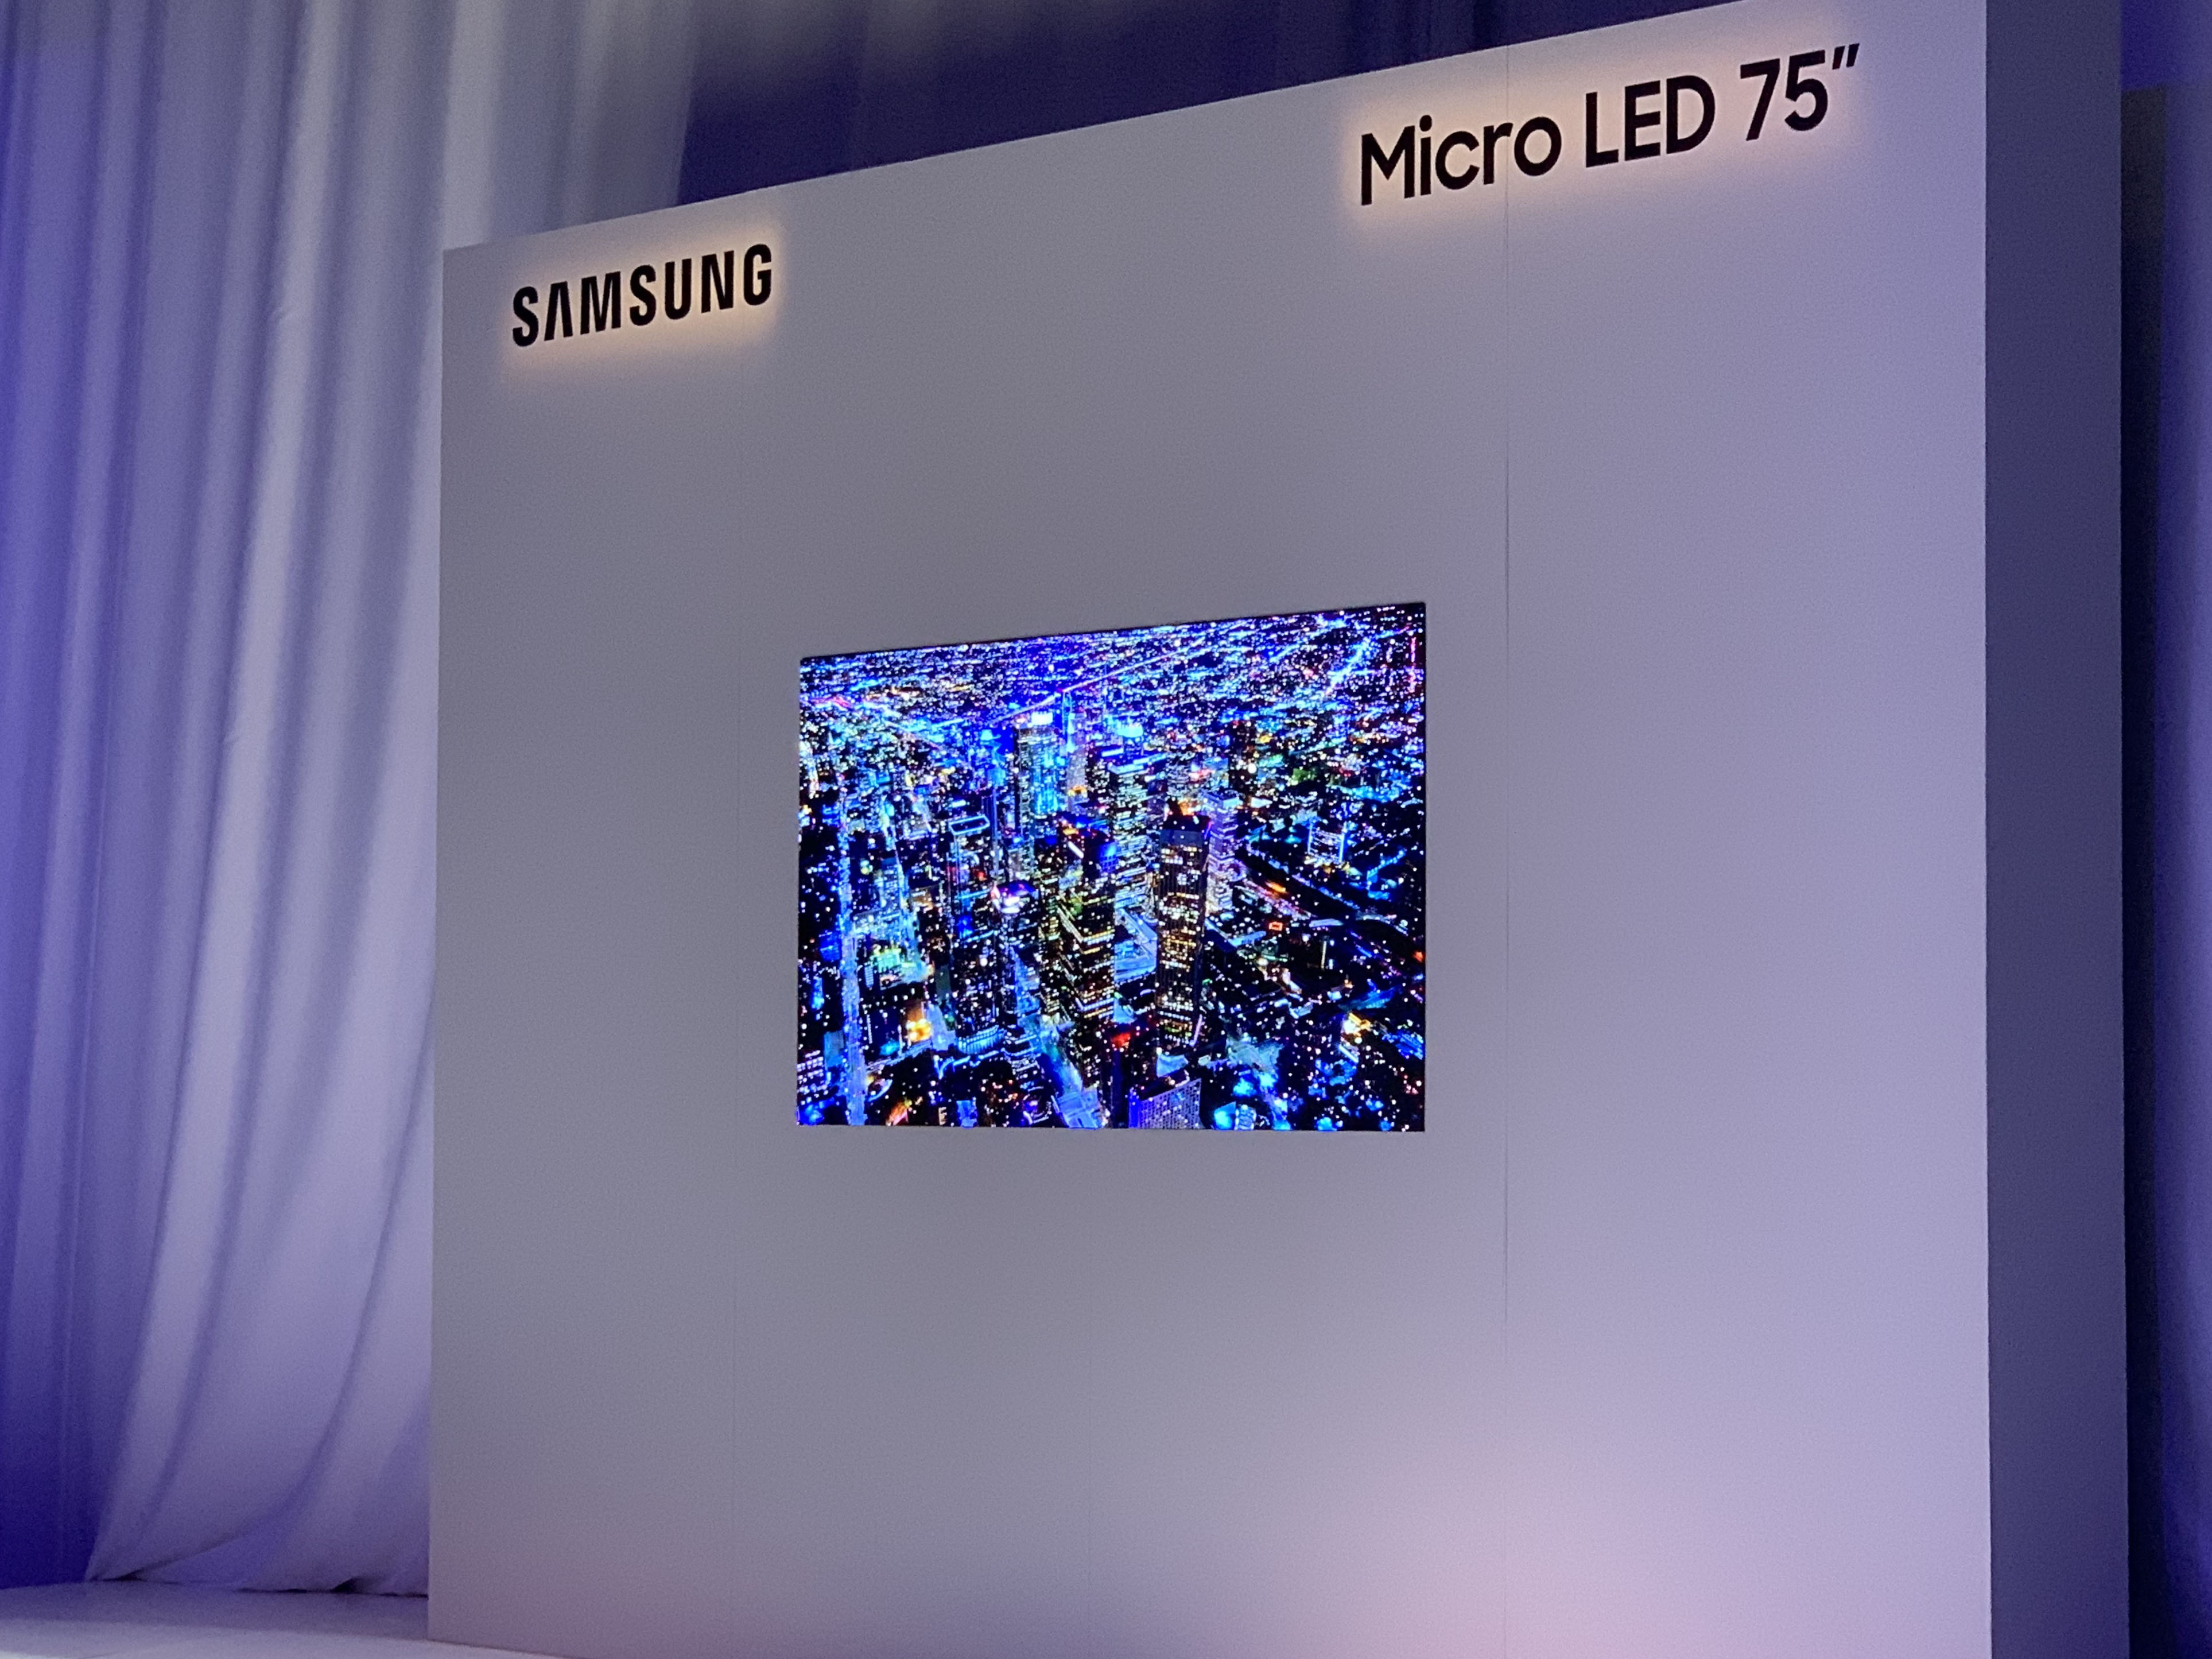 MicroLED TV: everything you need to know | What Hi-Fi?